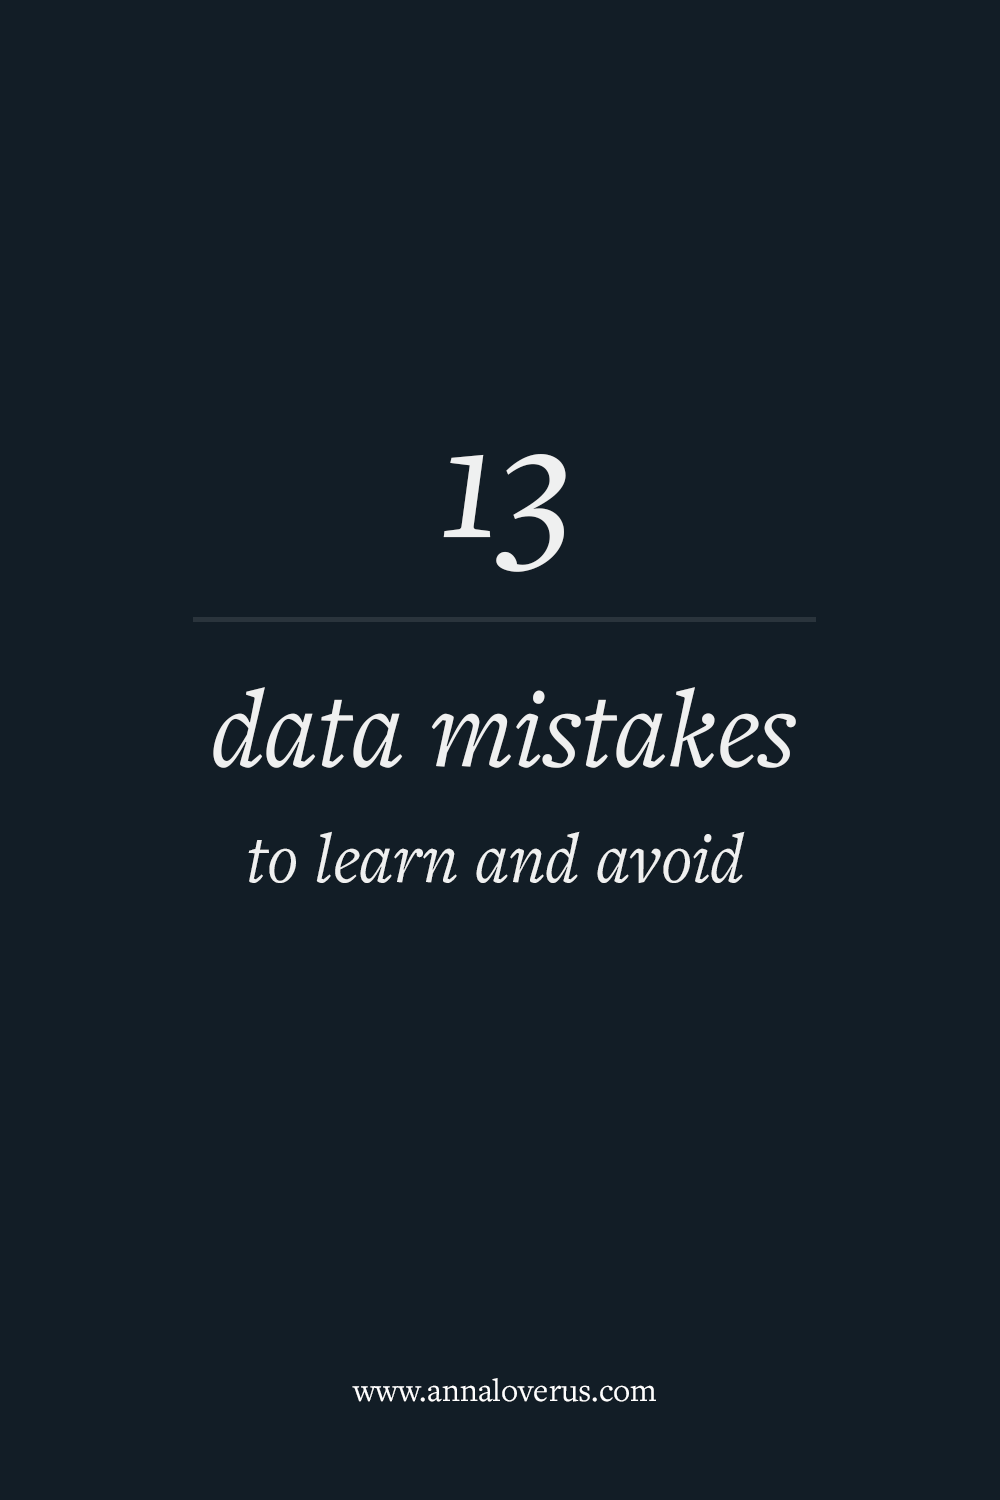 13 common data mistakes you should learn to avoid